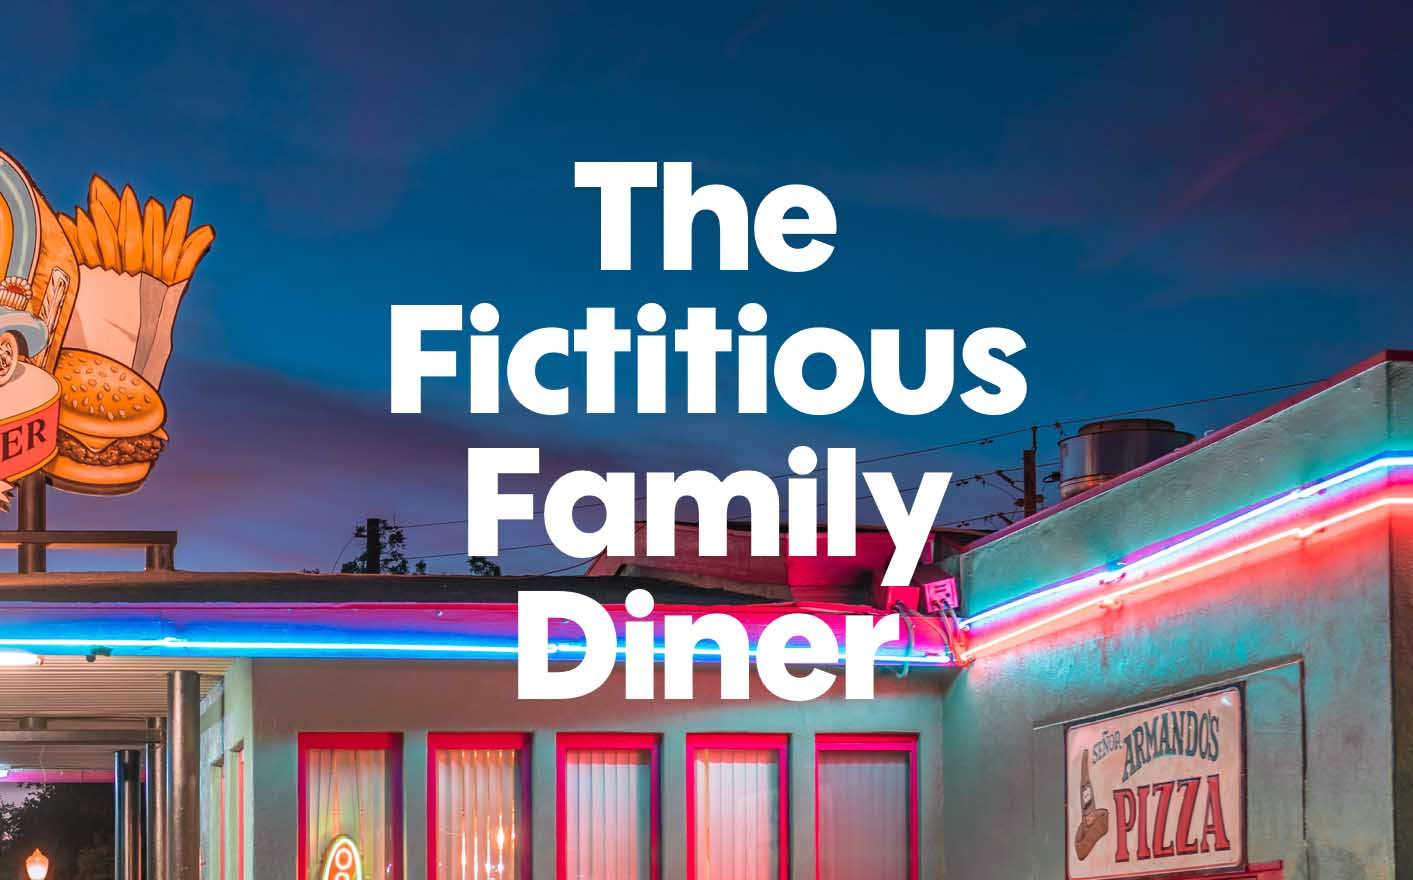 The Fictitious Family Diner Business Case